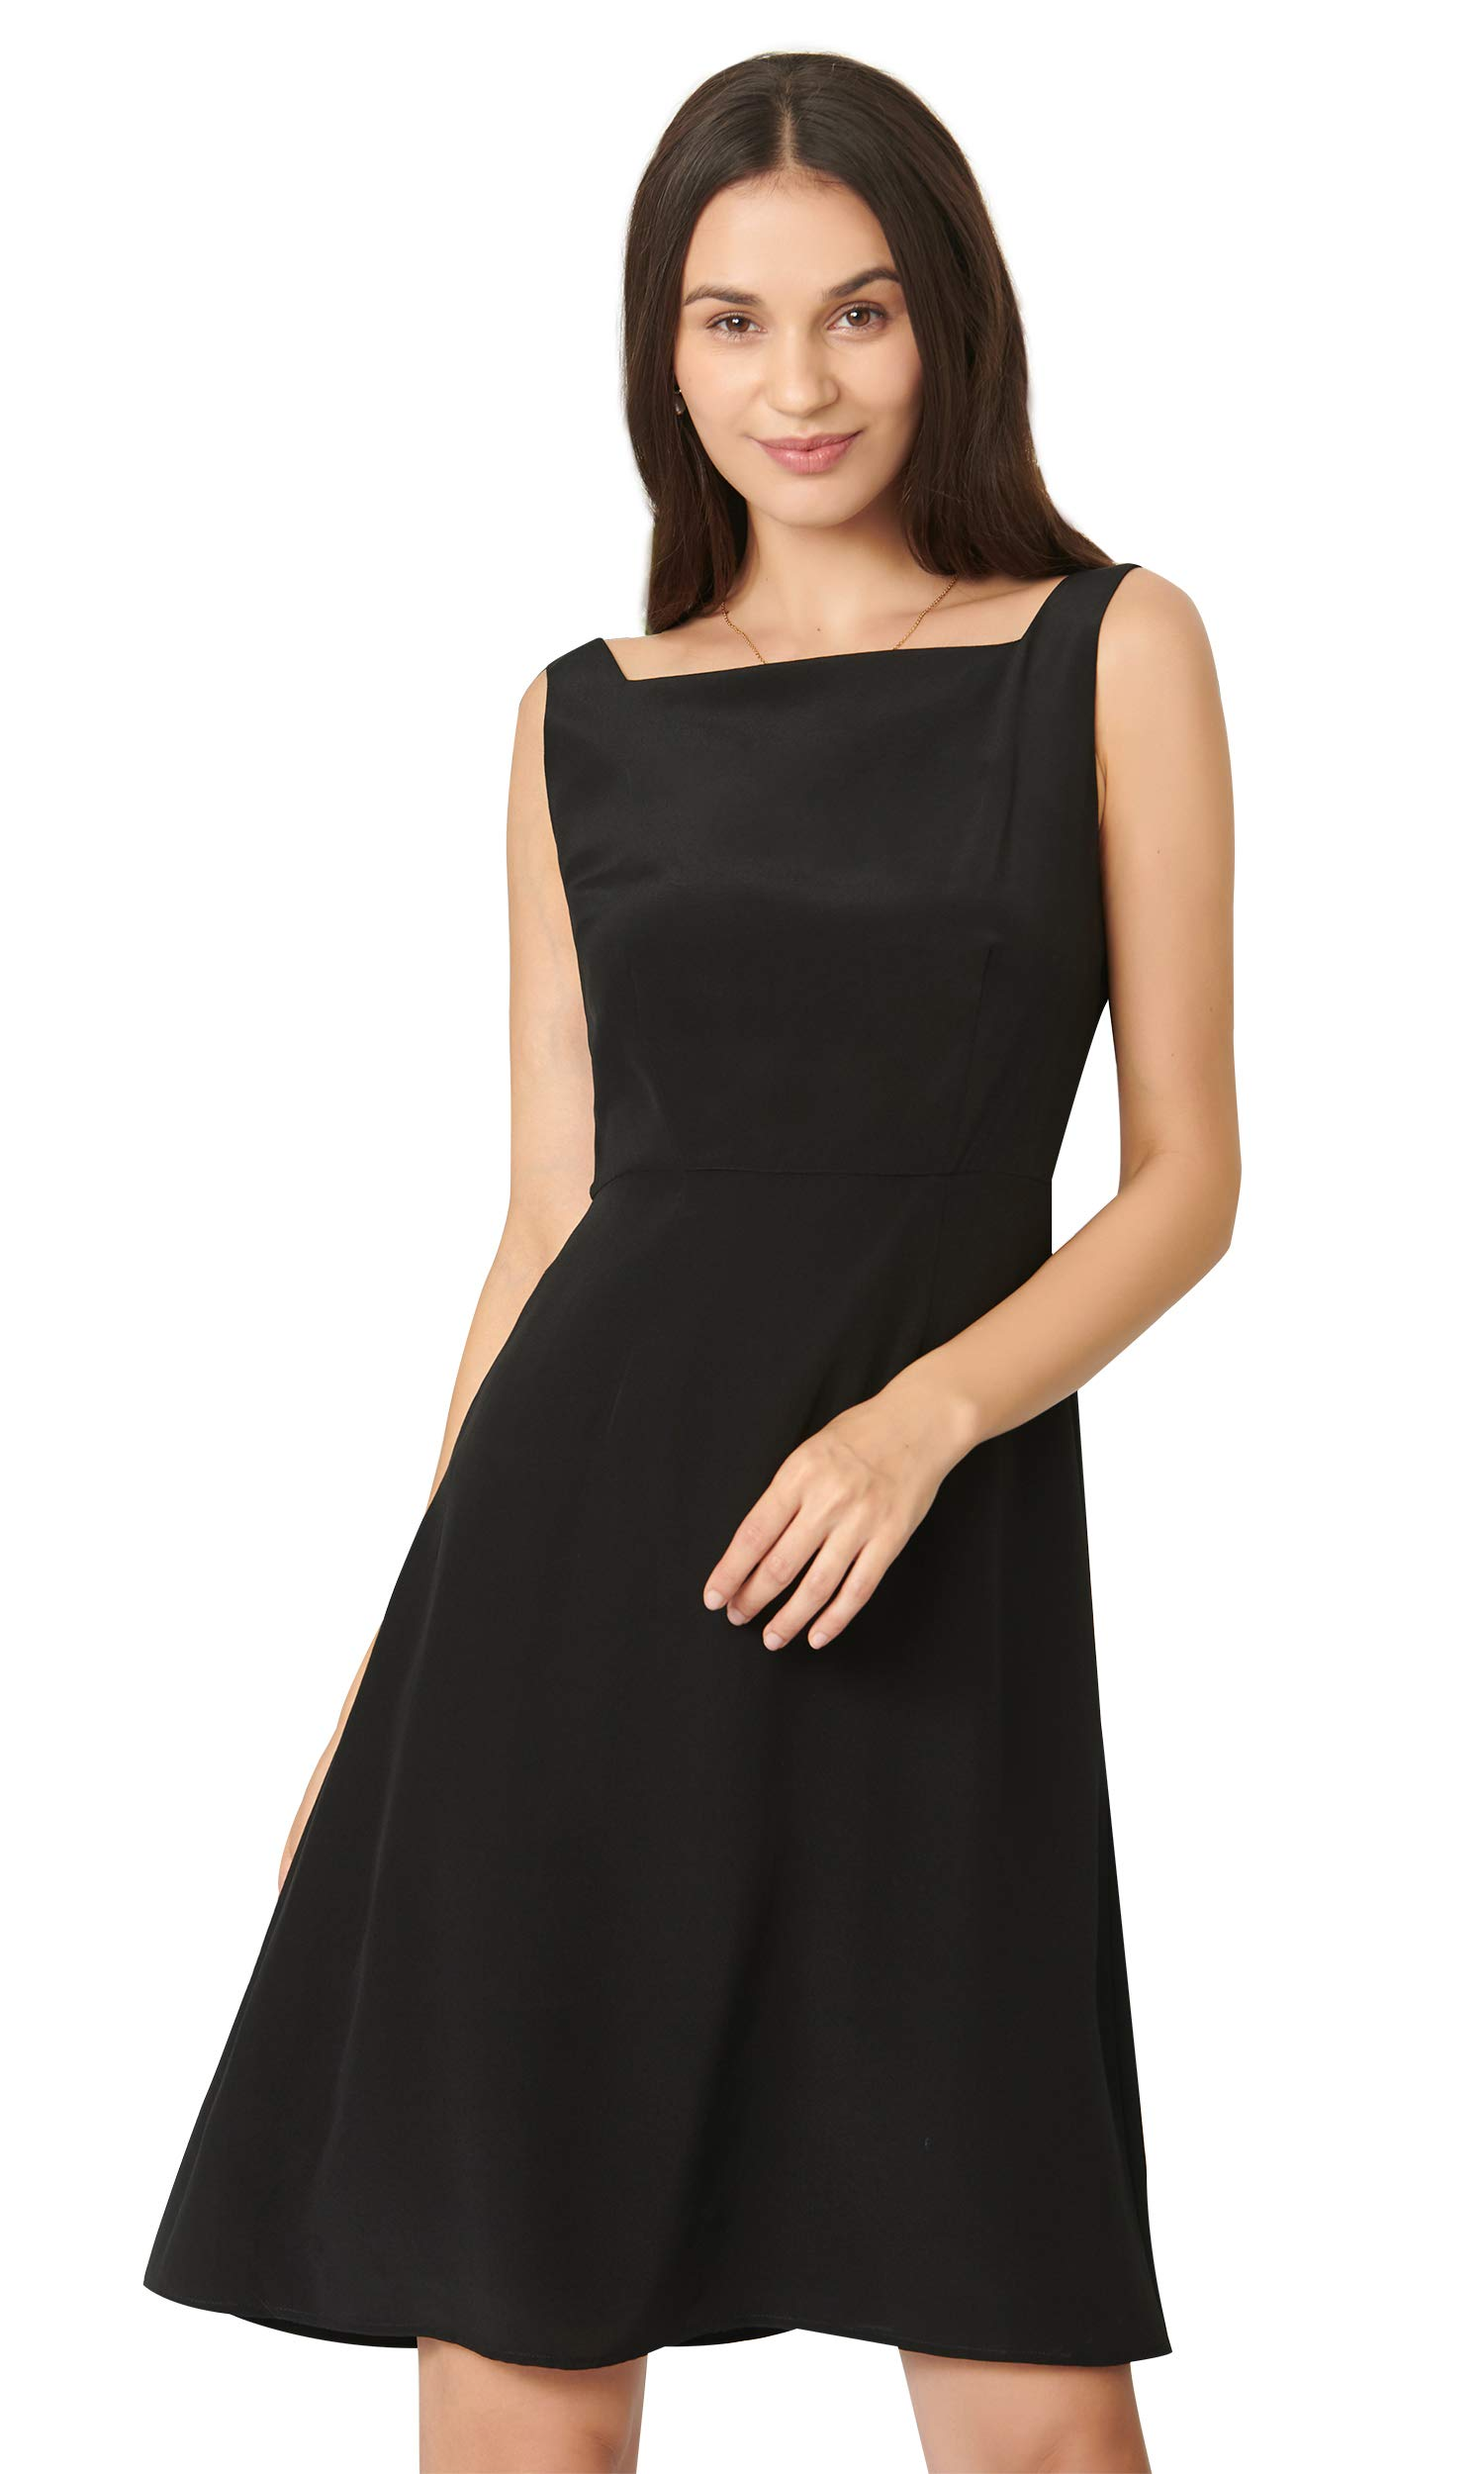 LilySilk Silk Black Dress Classic Boat Neck Sexy Knee Length Party Evening Real Natural Raw Silk for Ladies